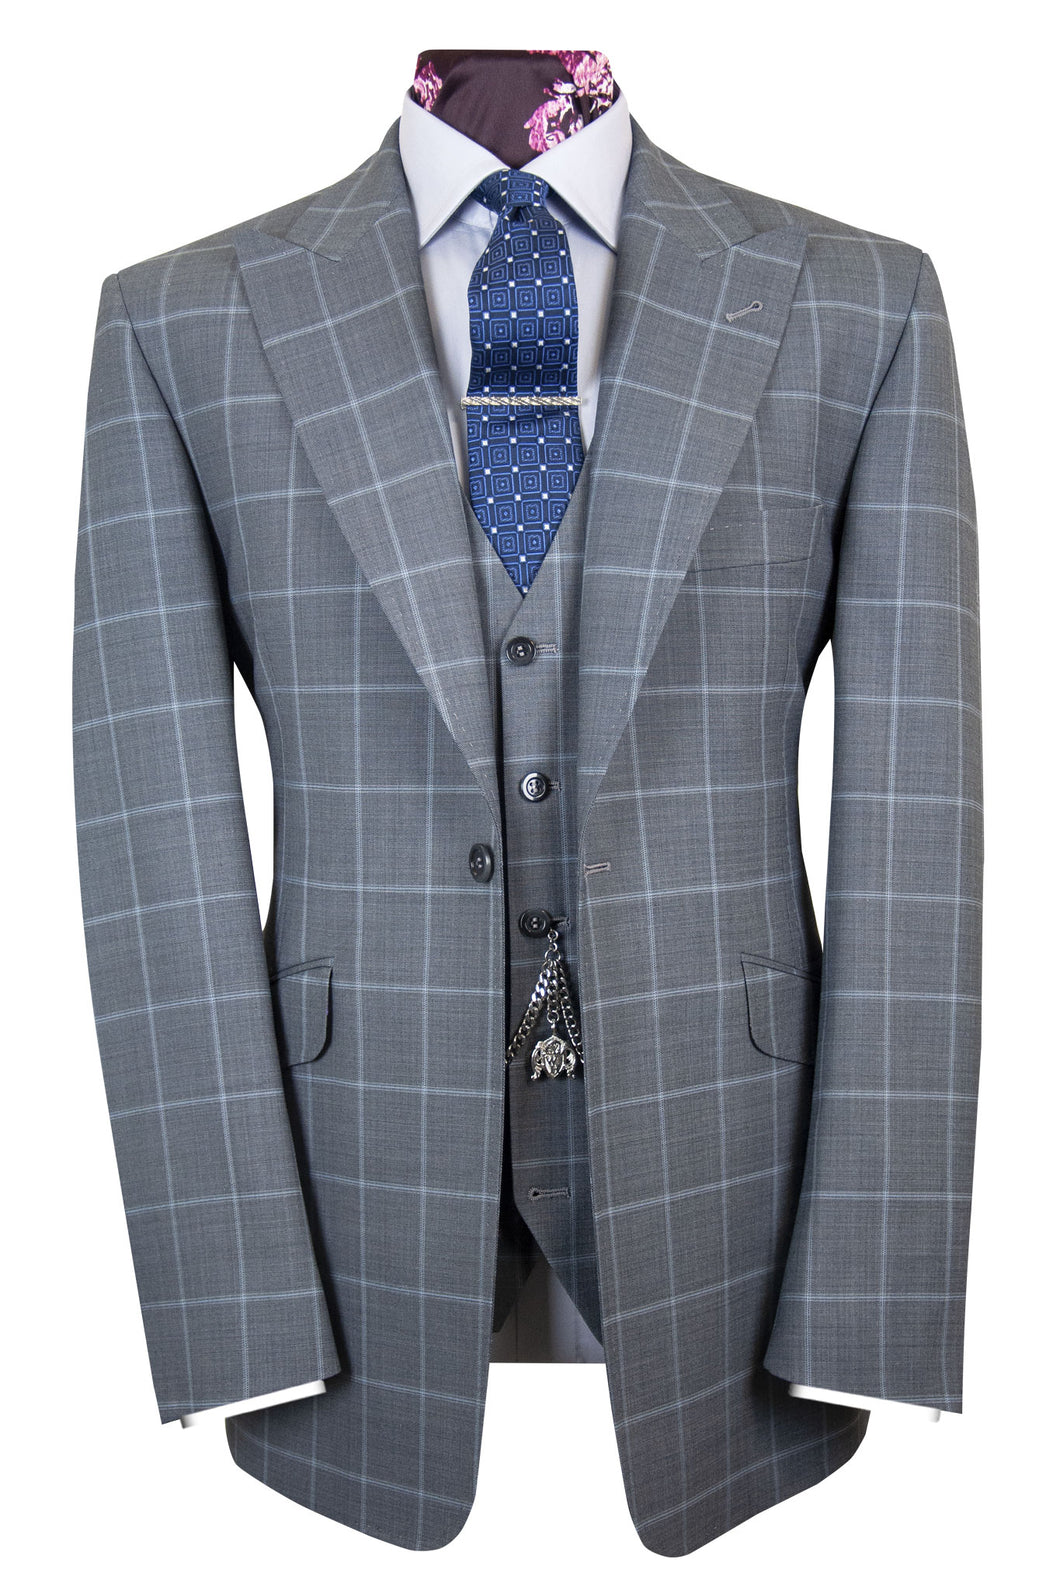 The Ark Smoke Grey Suit with Sky Blue Windowpane Check